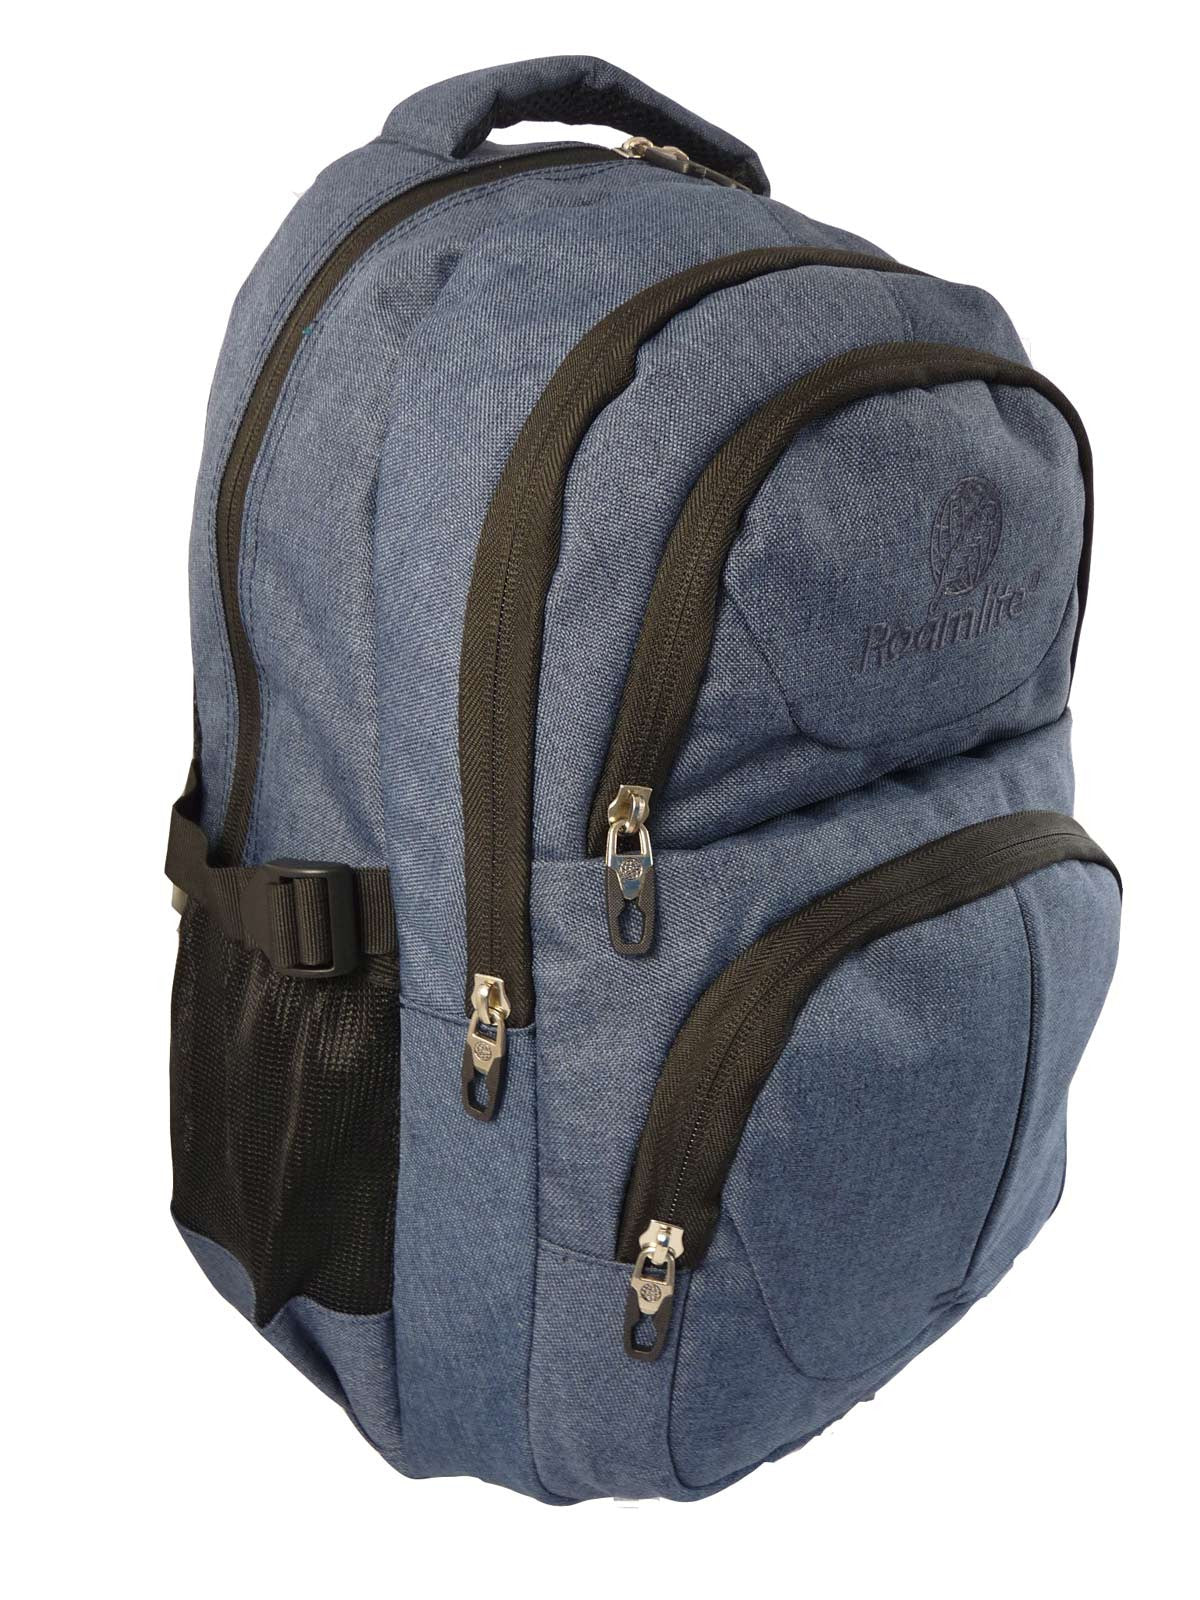 Laptop Macbook Backpack Rucksack Bag RL43N Side S View